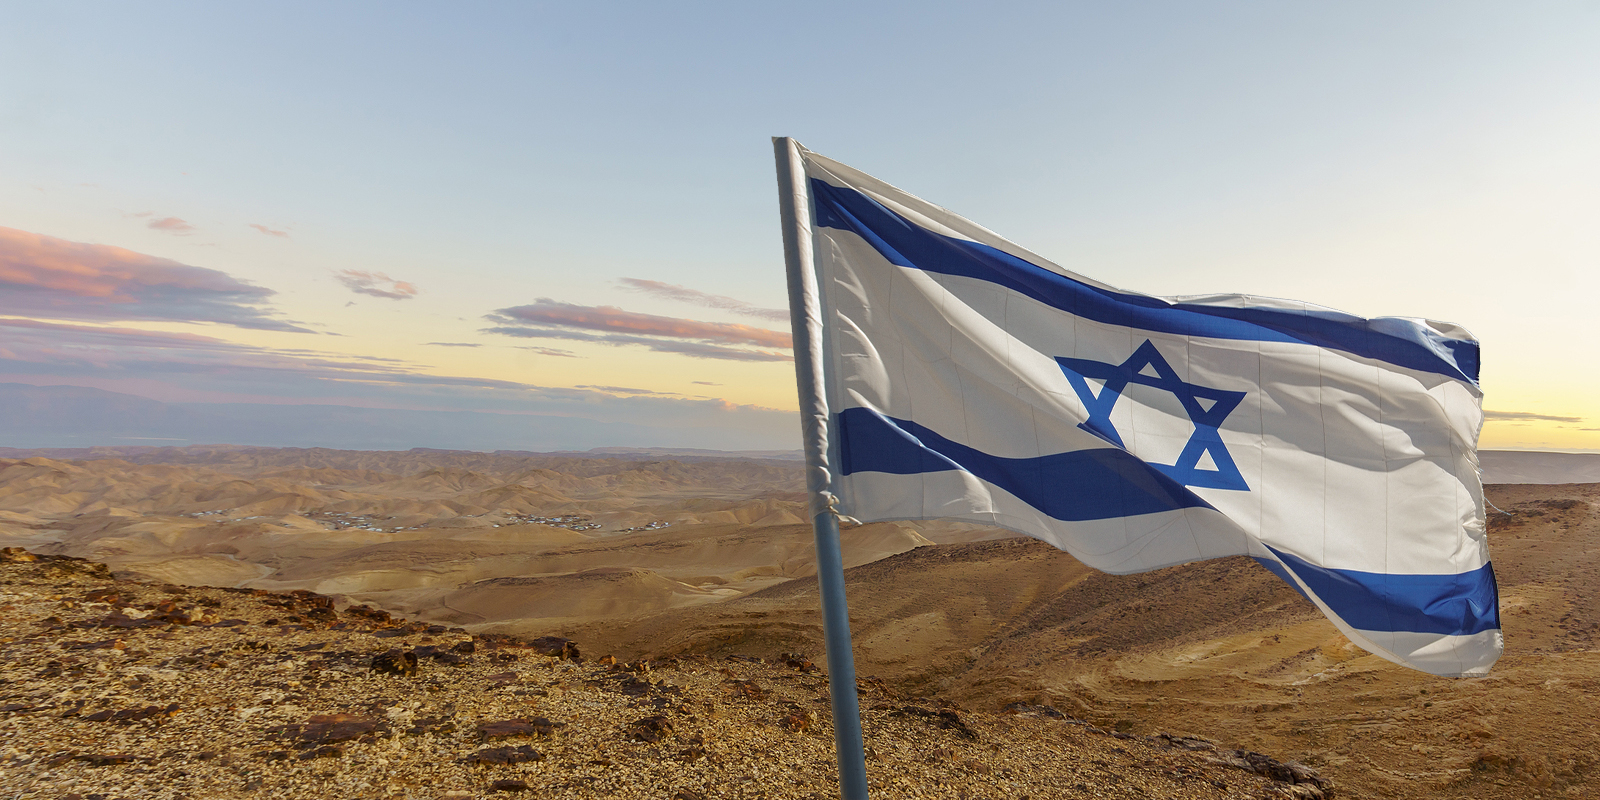 Jordan Valley and the Flag of Israel